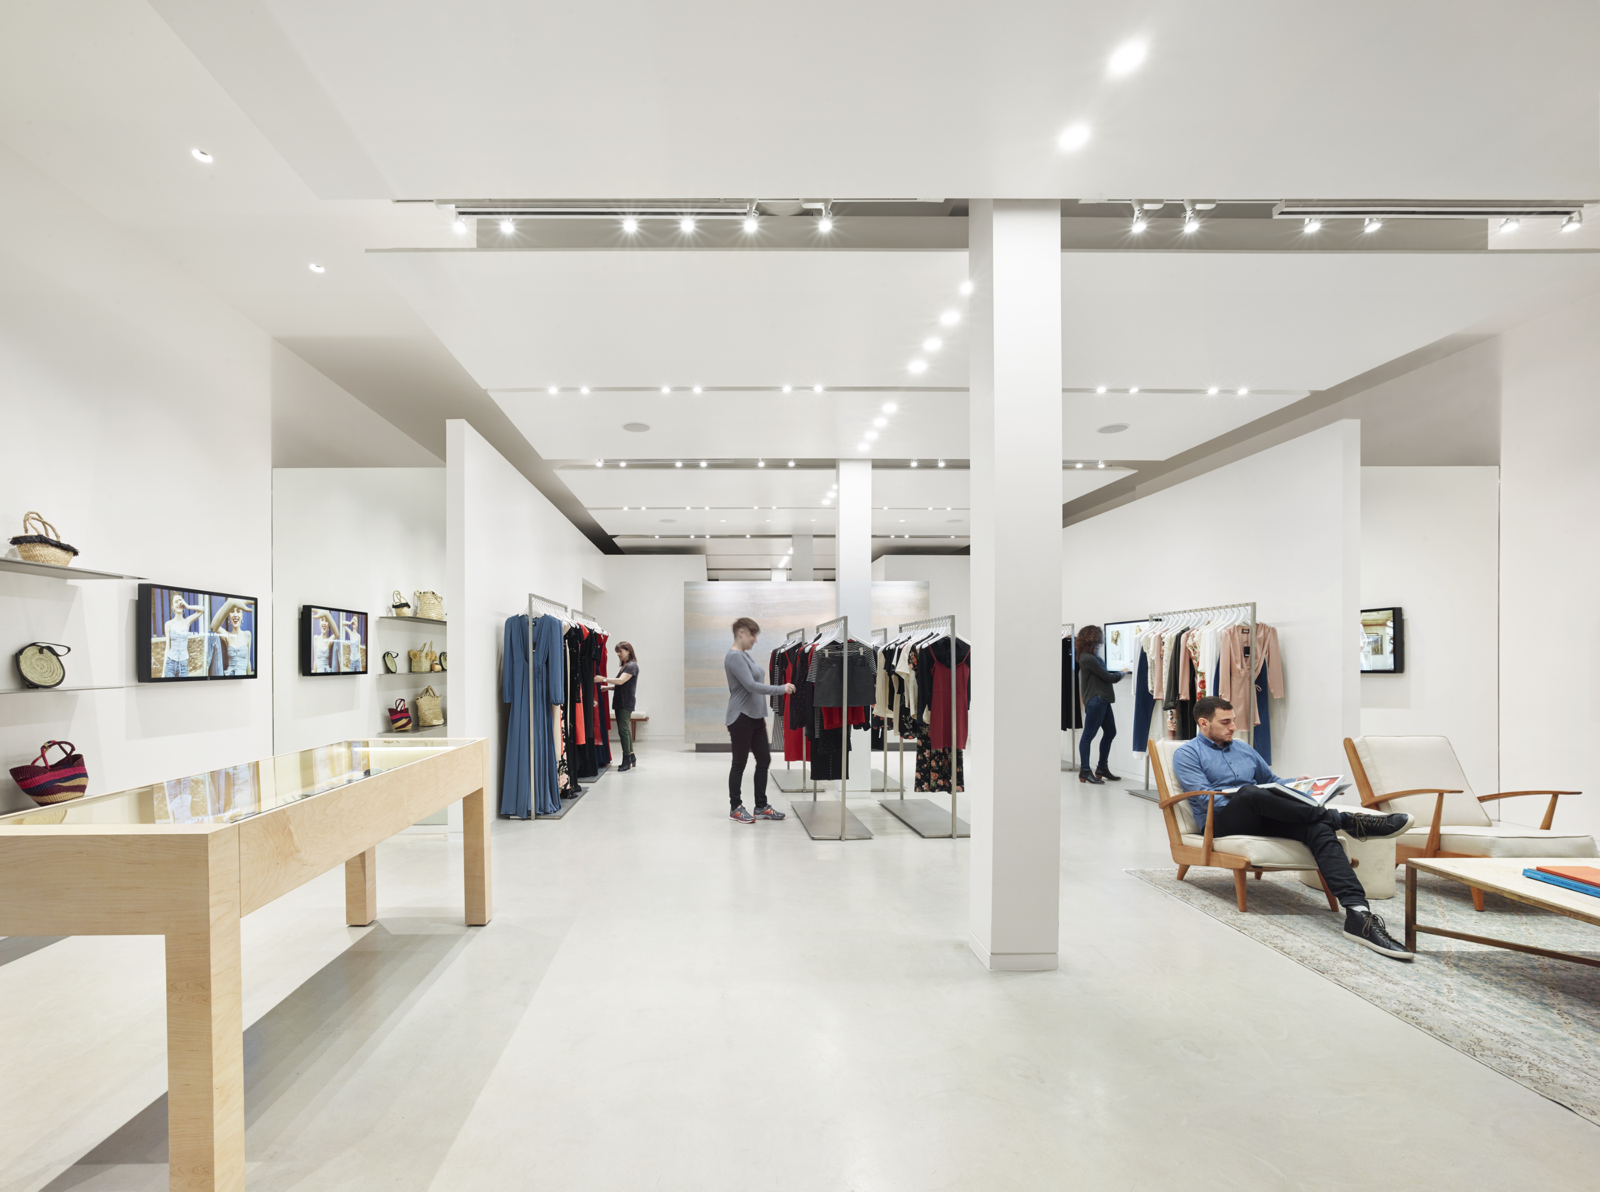 Photo 1 of 7 in Bohlin Cywinski Jackson Designs a Tech-Forward Retail Experience For Reformation